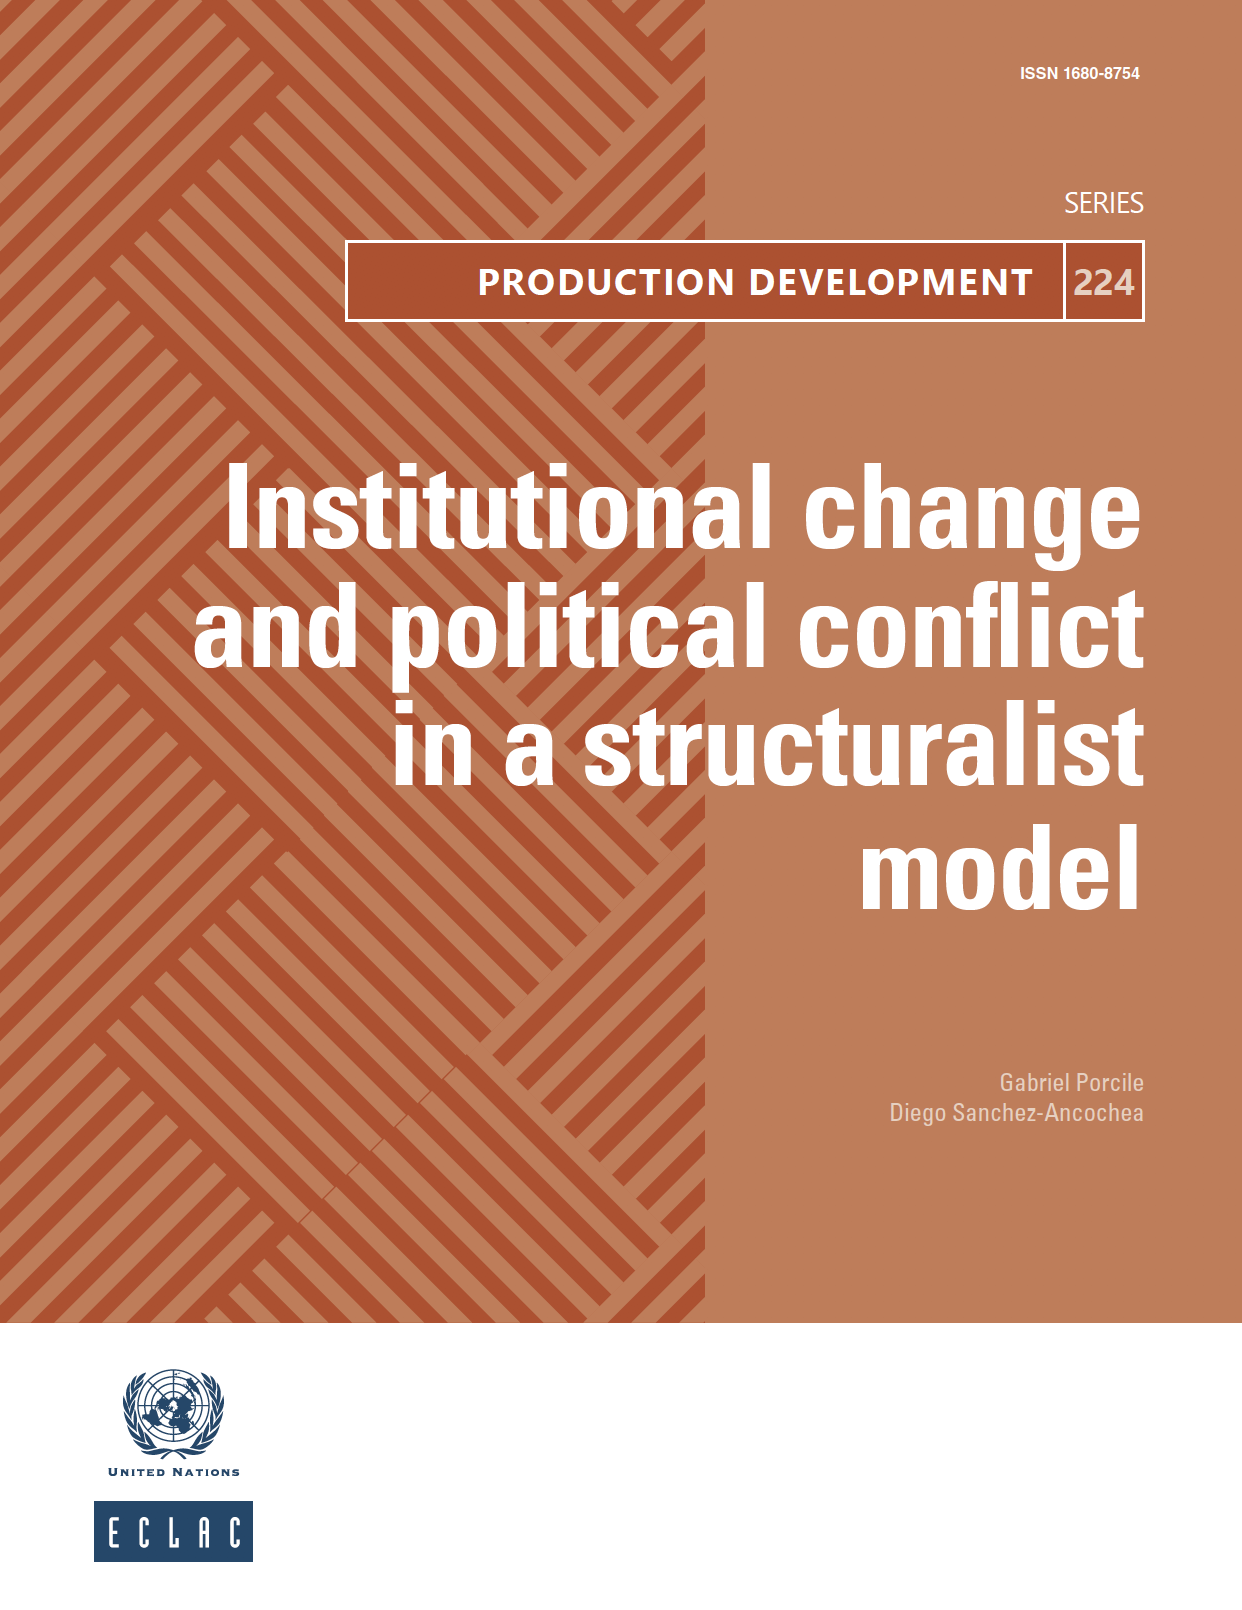 Institutional change and political conflict in a structuralist model